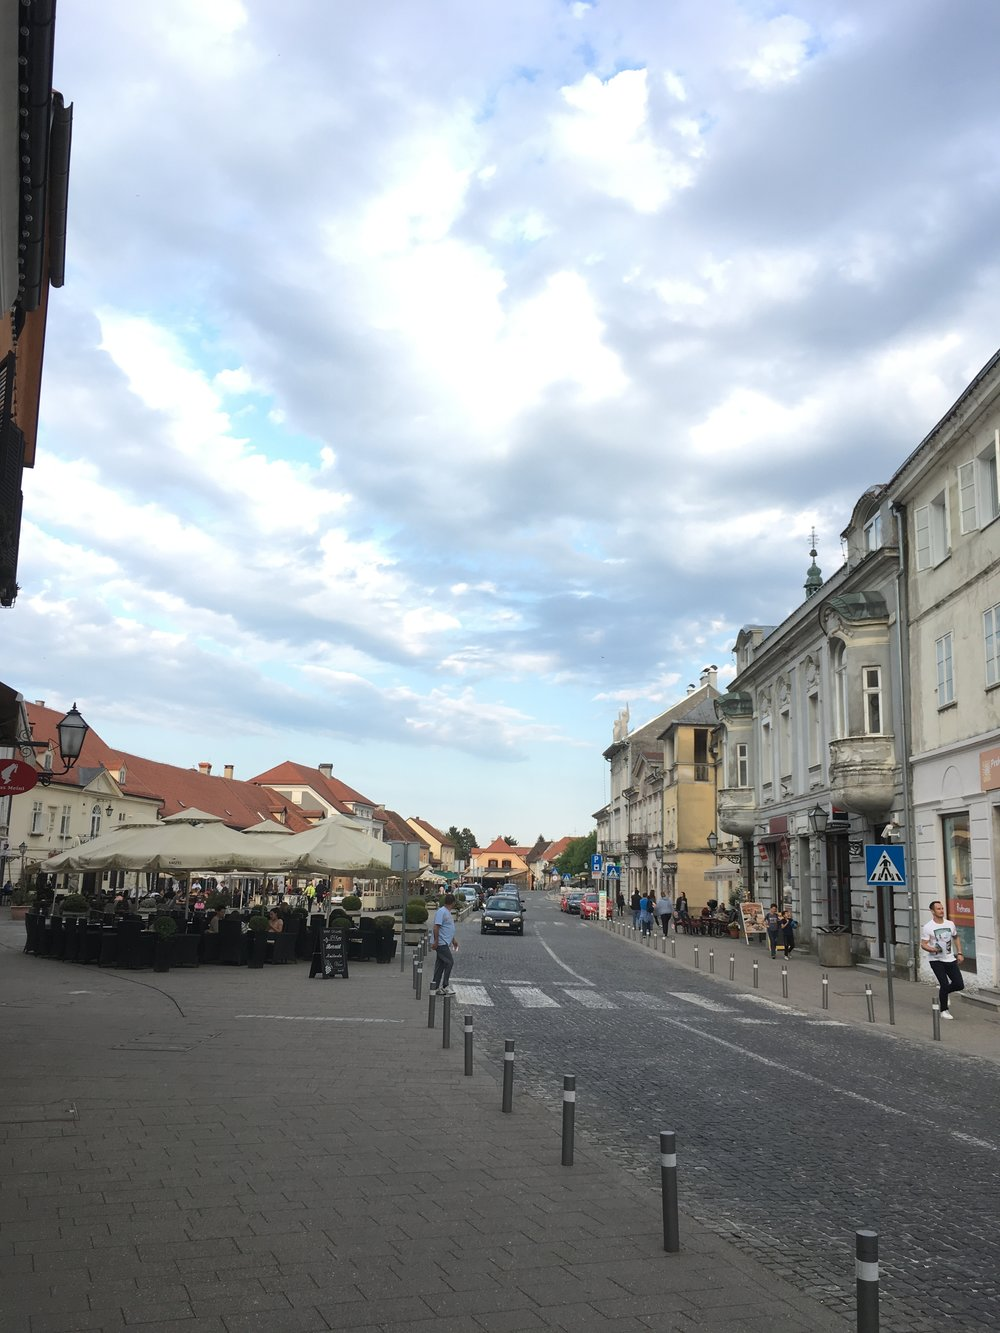 Patio restaurants and cafes of Samobor